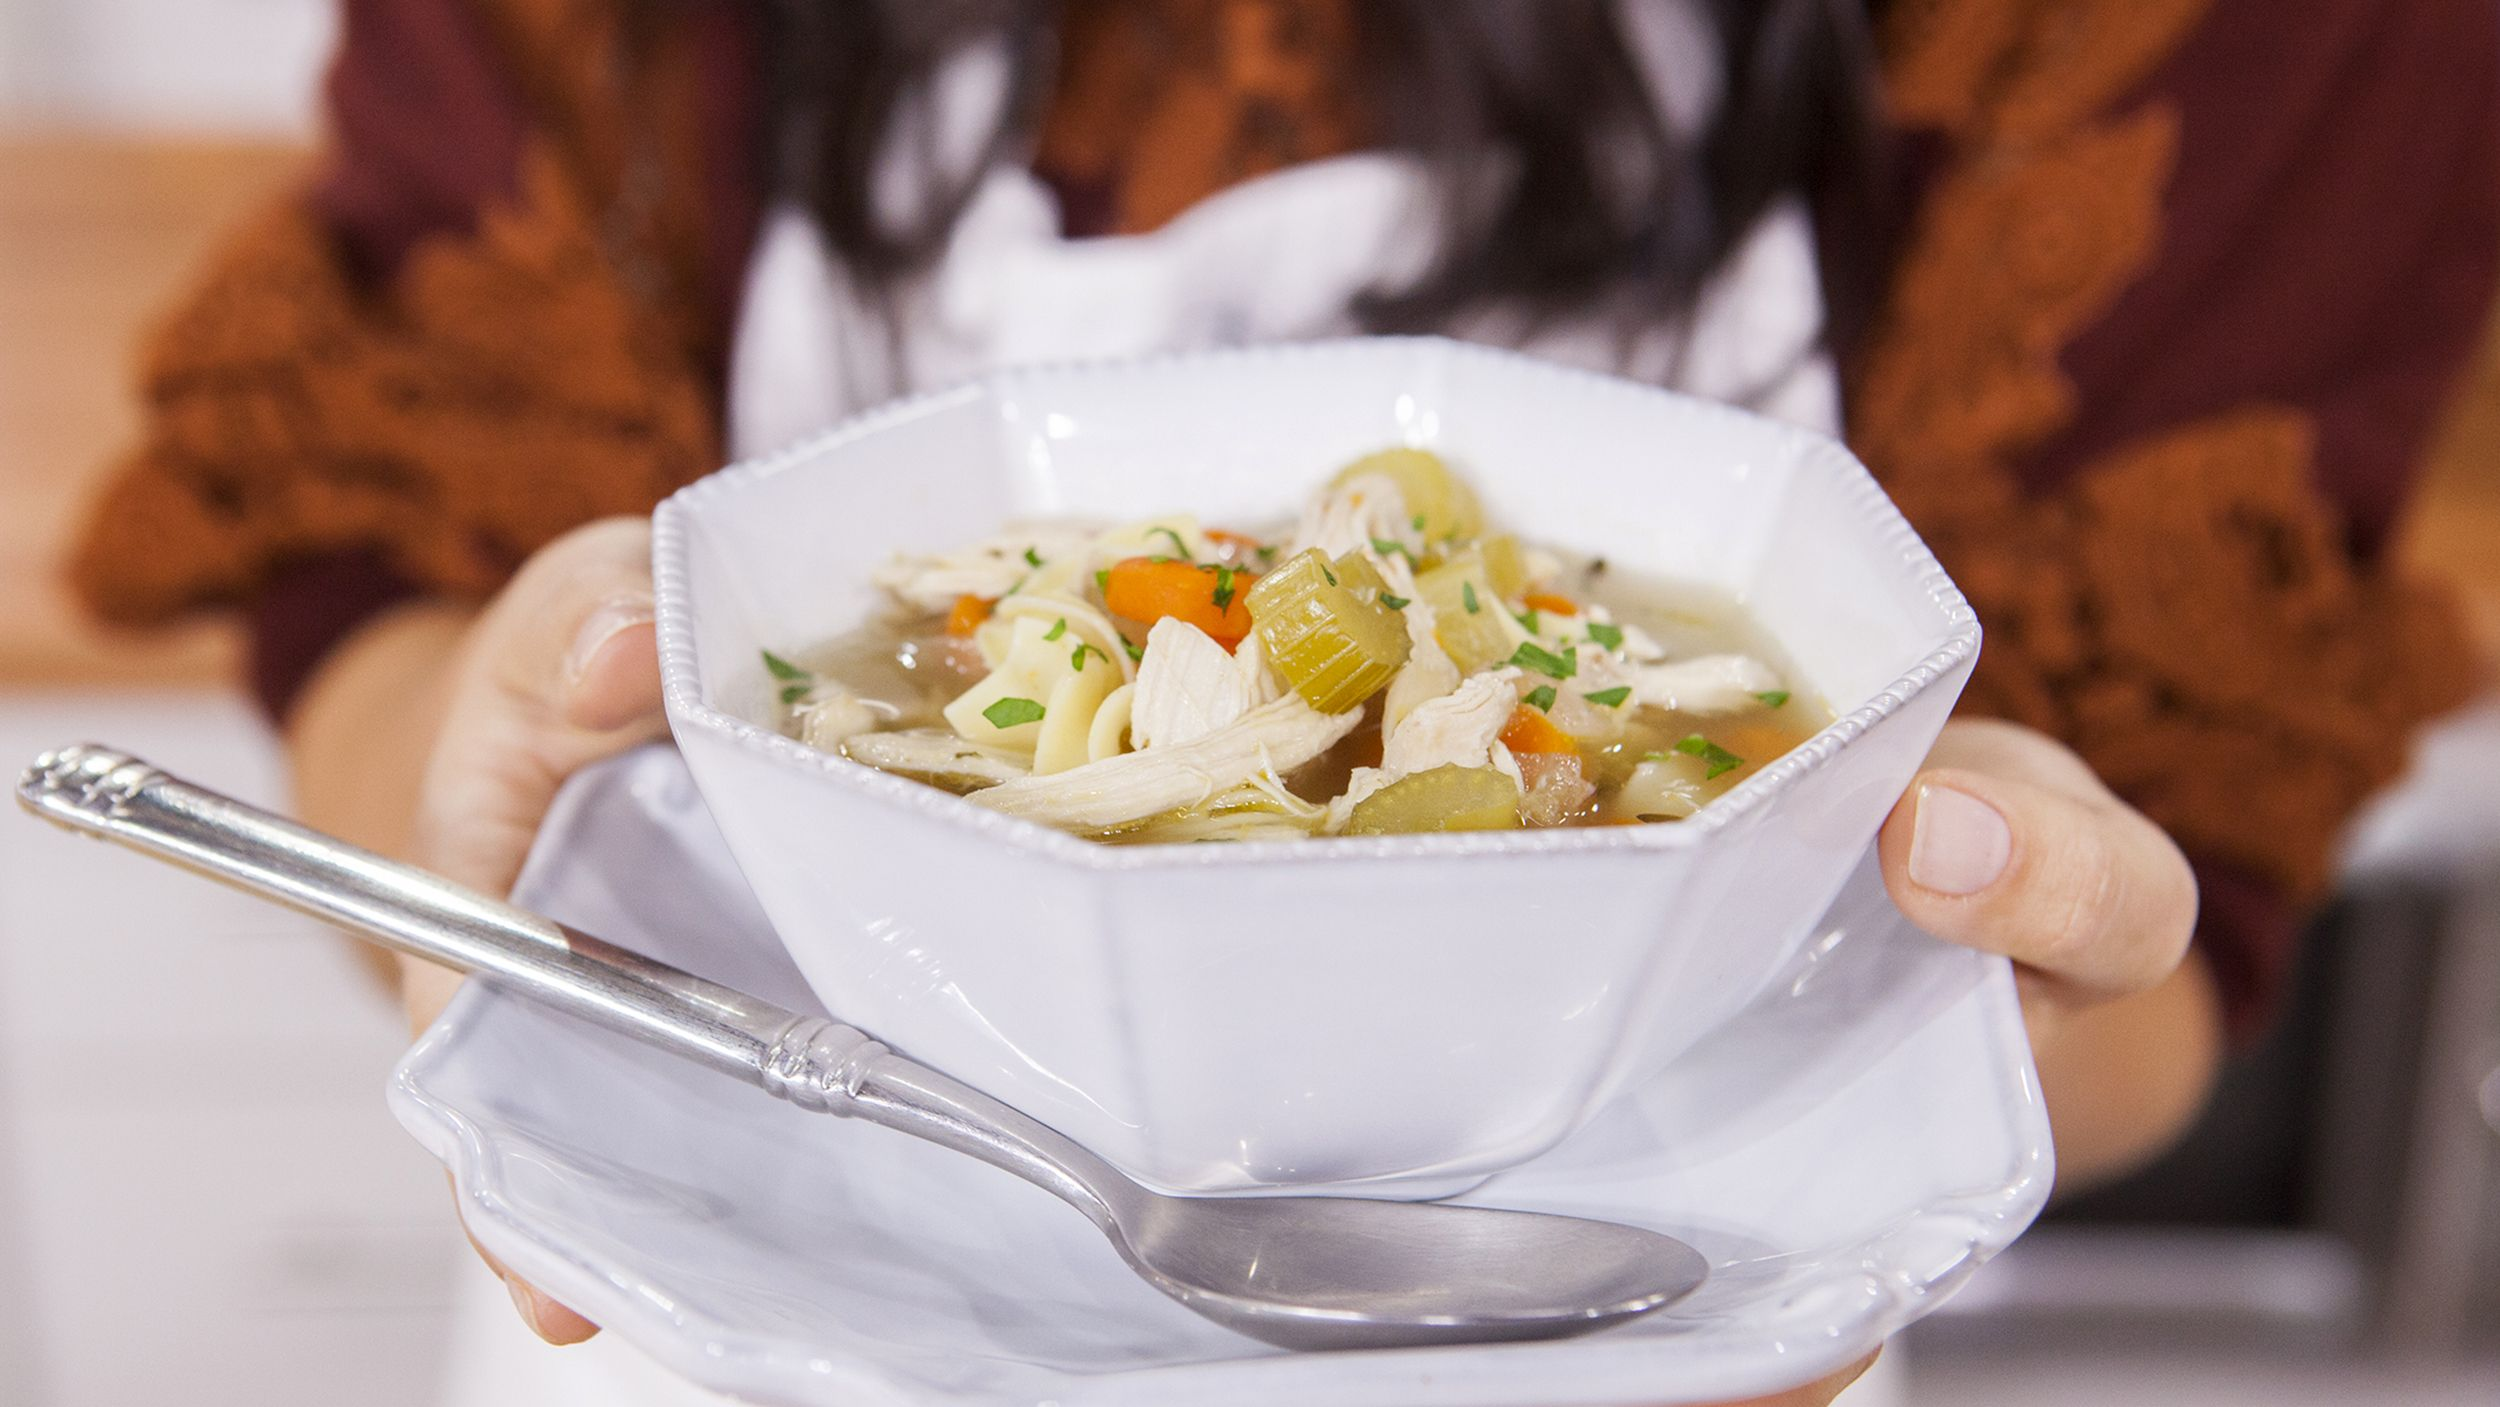 Katie lees chicken noodle soup is the solution to cold weather katie lees chicken noodle soup is the solution to cold weather blues forumfinder Image collections